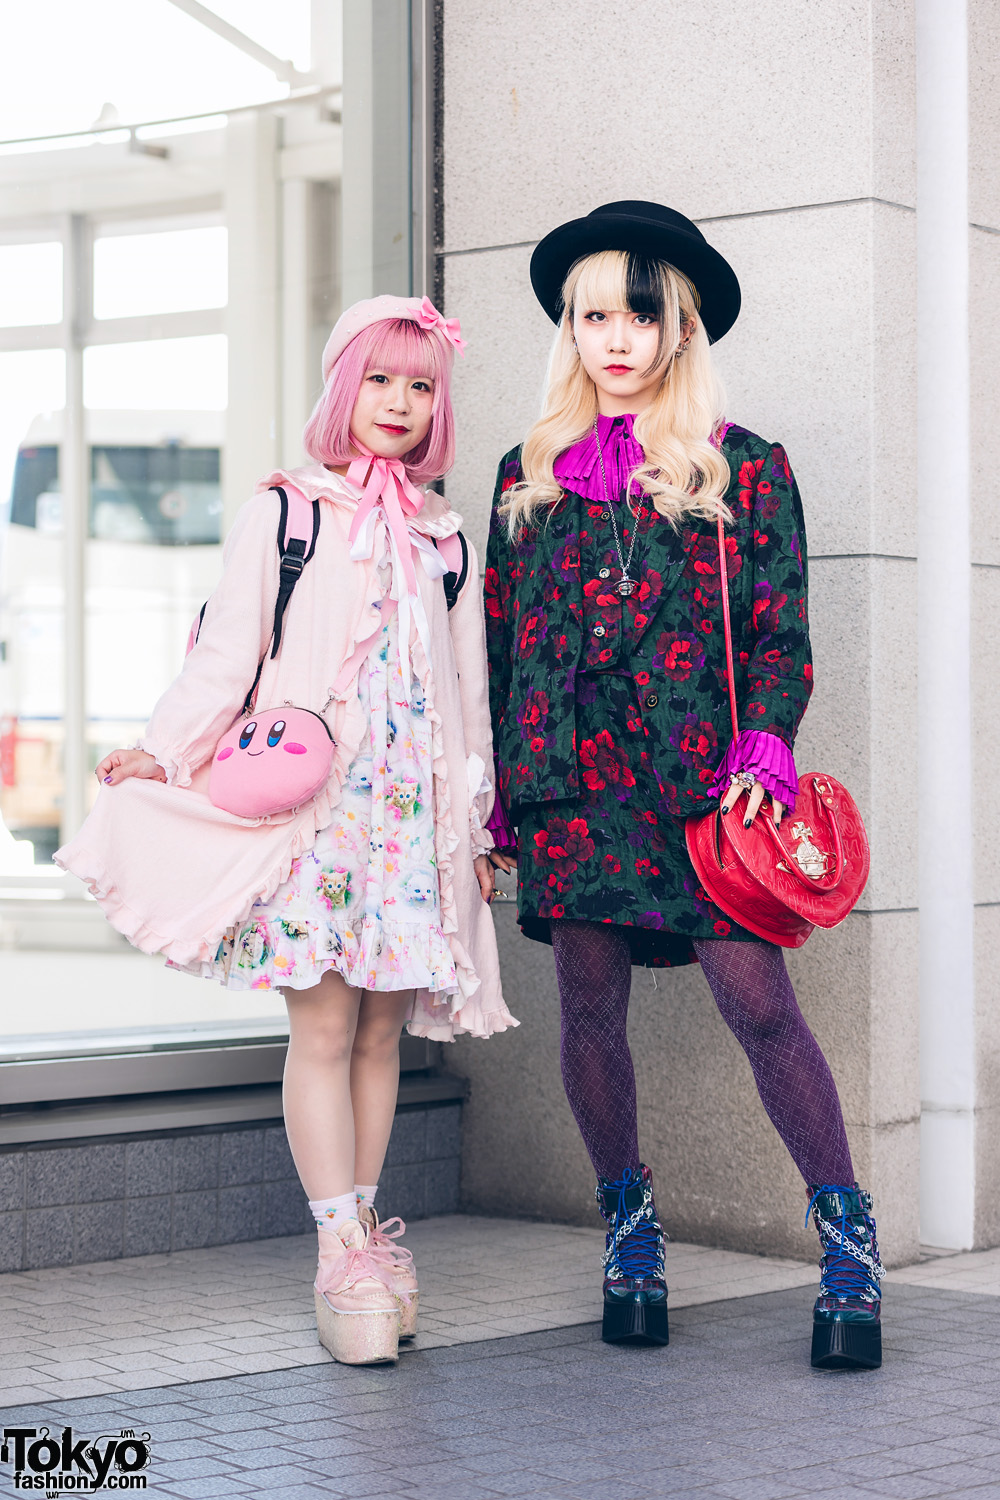 Japanese Street Styles w/ Pink Bob, Two-Tone Hair, Hats, Nile Perch, Vintage Suit, Kirby Bag, Vivienne Westwood, Alice and the Pirates, Yosuke & Swankiss